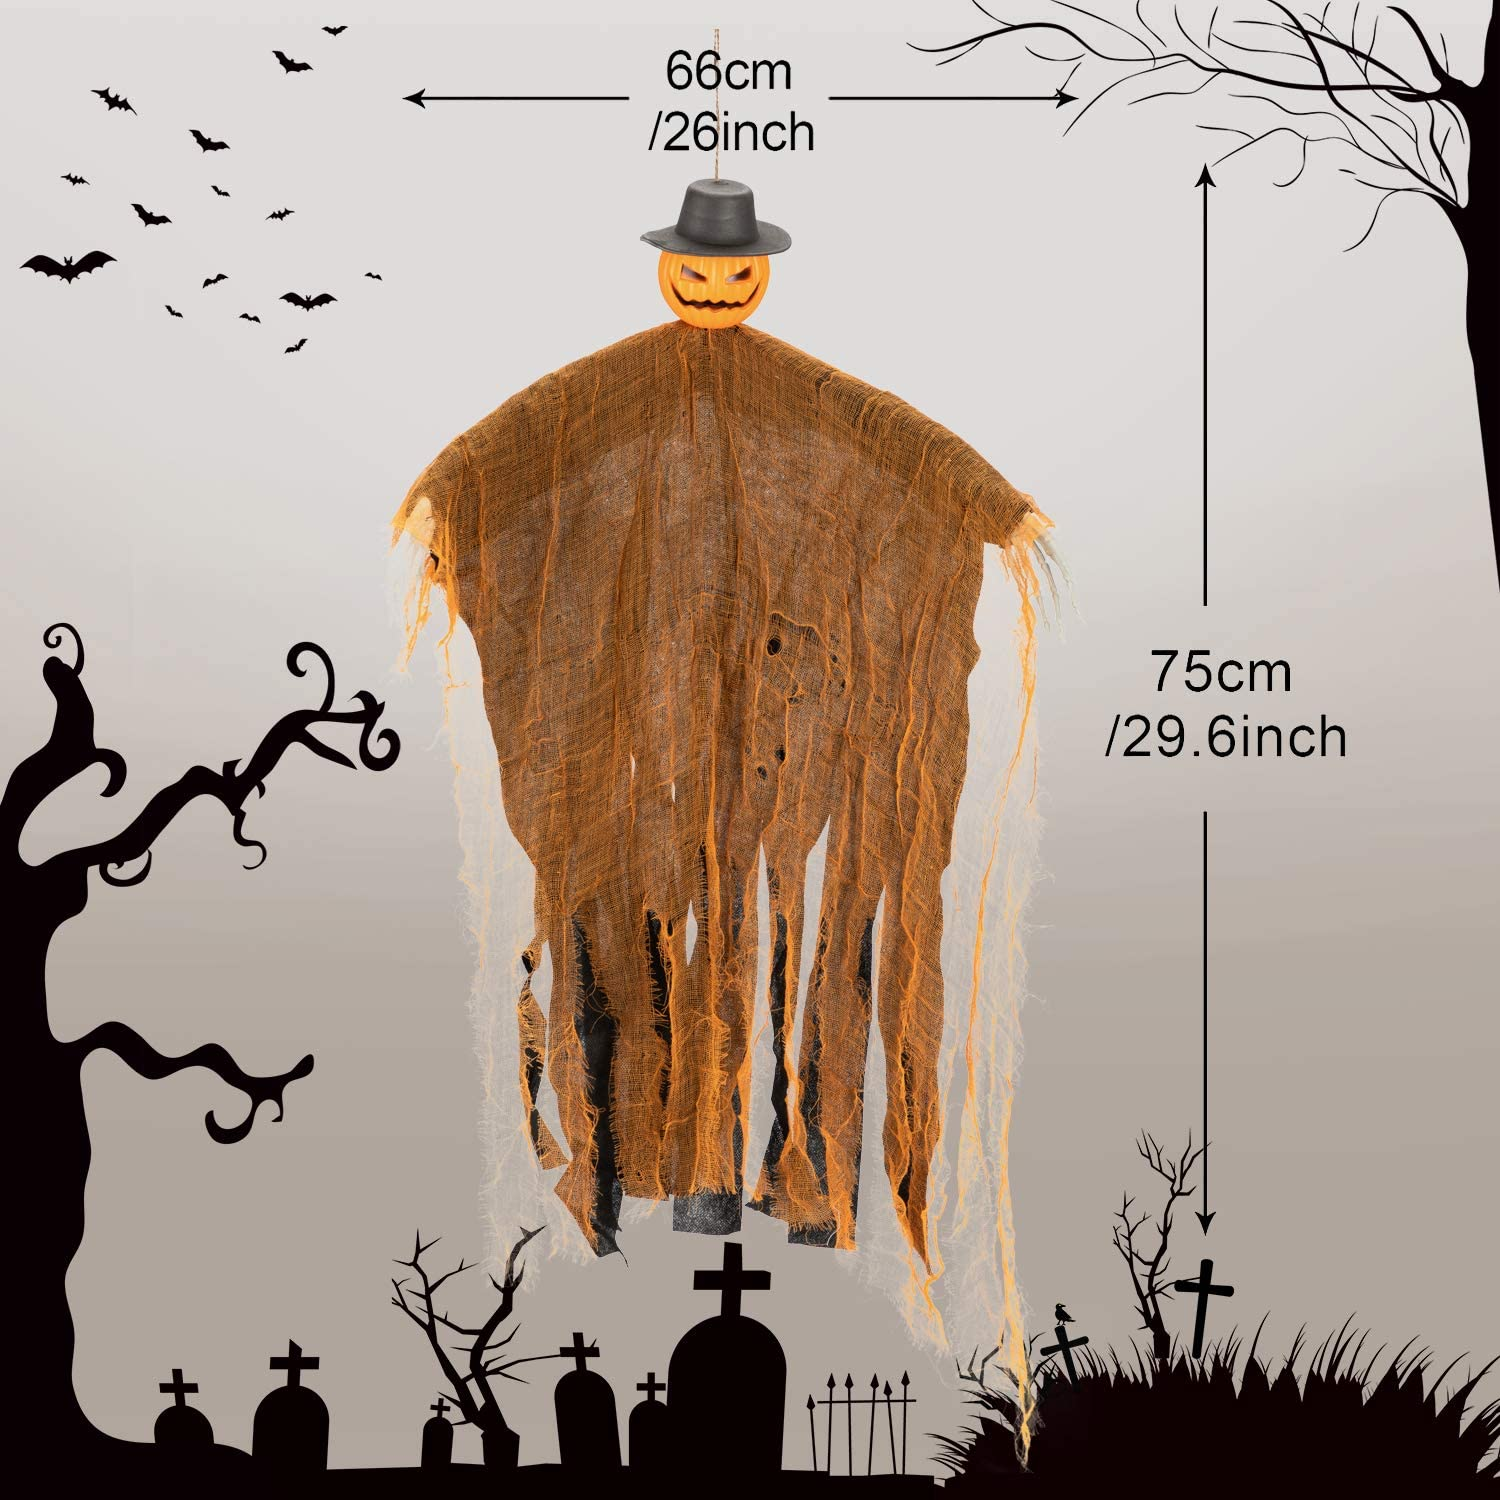 LessMo Halloween Hanging Ghost Scary Halloween Props for Front Yard Patio Lawn Garden Party D/écor and Holiday Decoration Hanging Skeleton Ghost Halloween Decorations